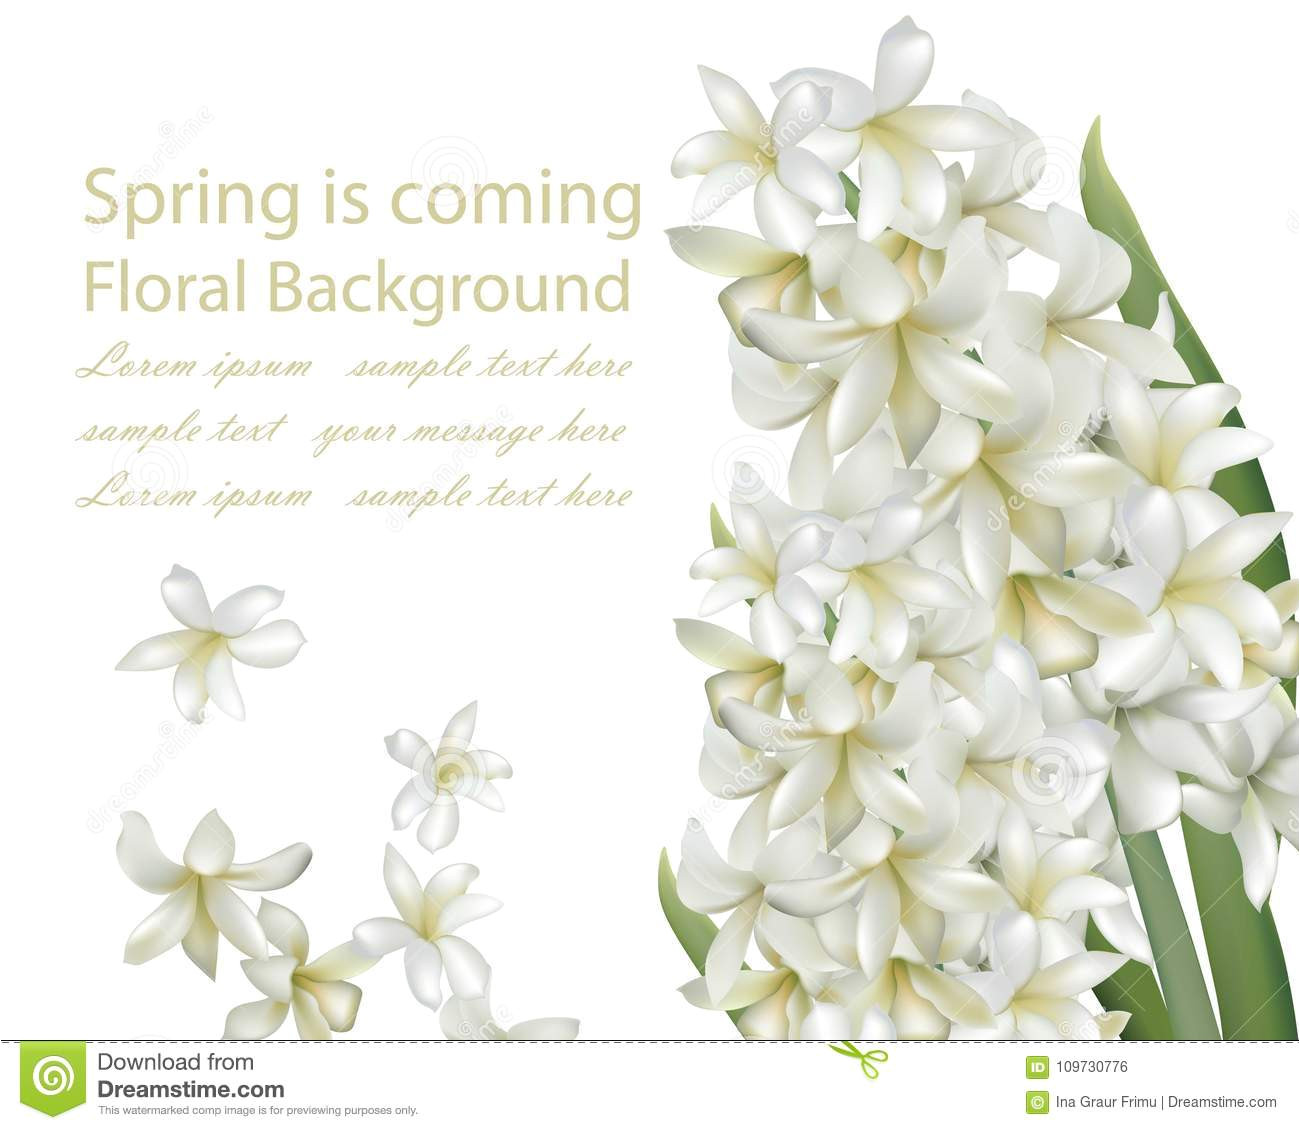 hyacinth white flower bouquet isolated background vector realistic spring coming card illustrations d illustration 109730776 jpg